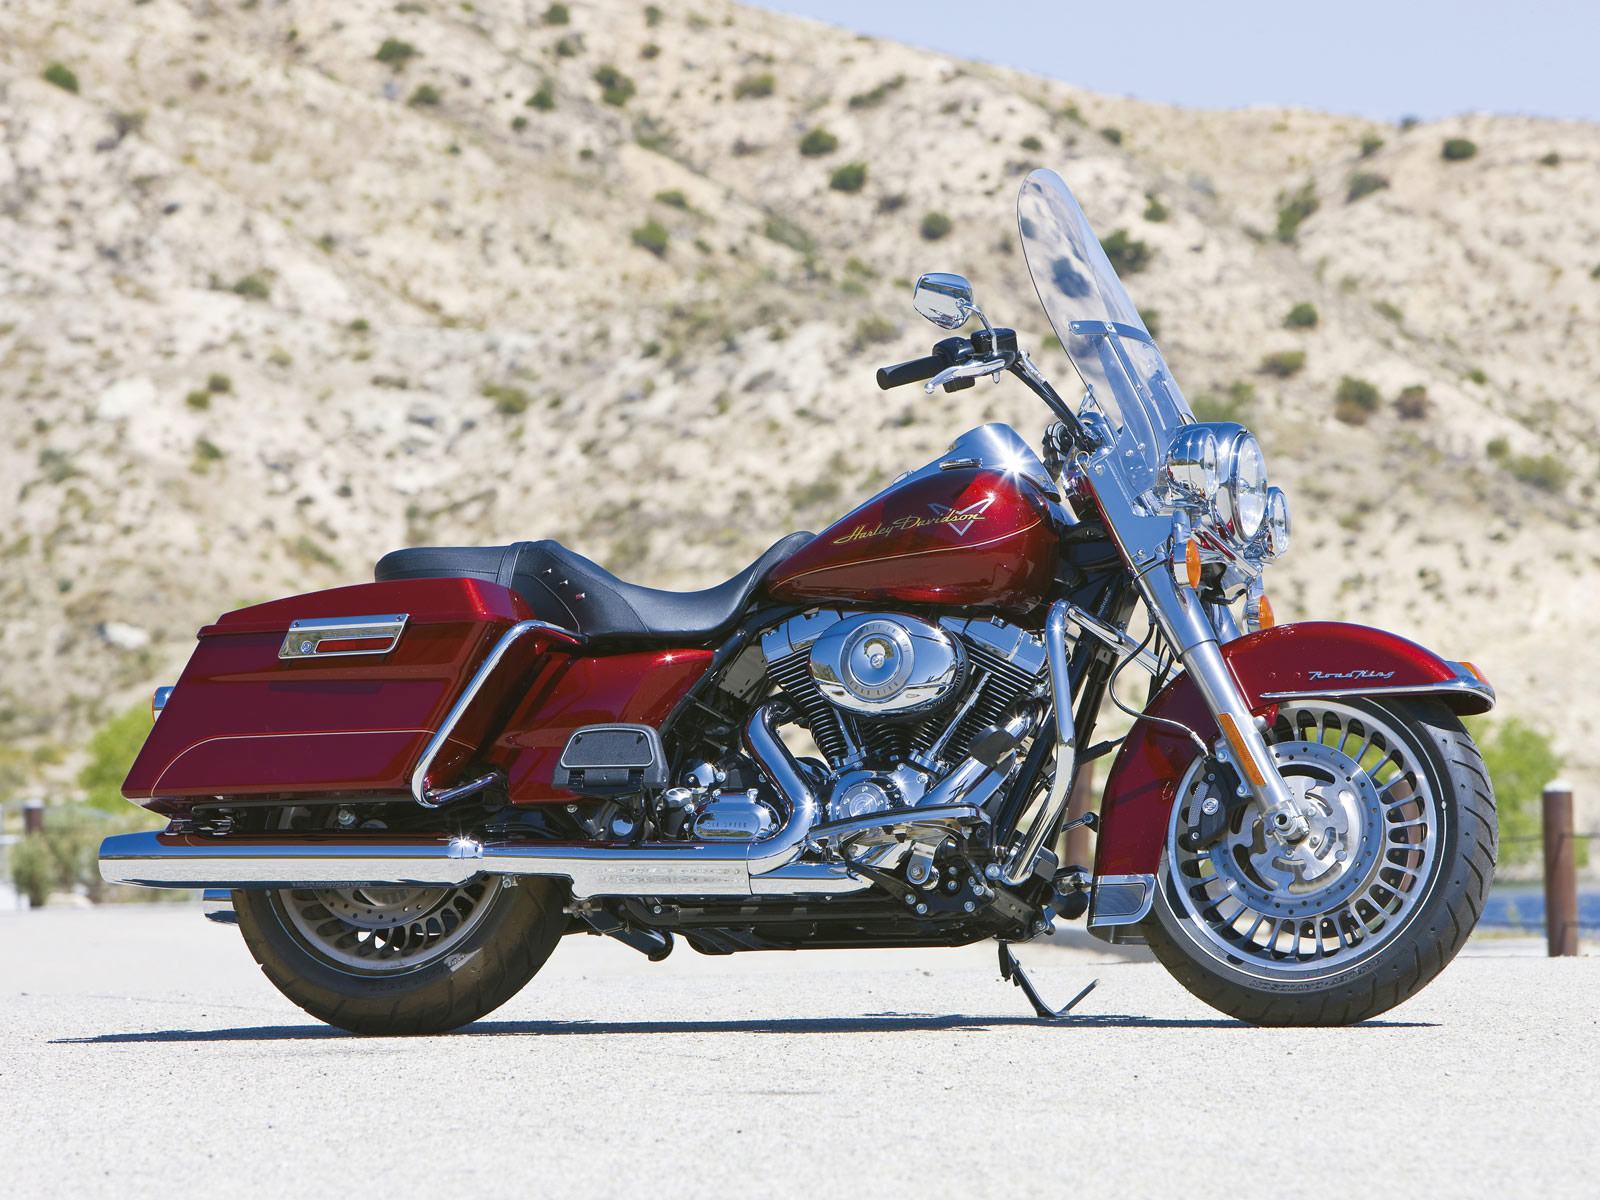 flhr road king accident lawyers info 2009 harley davidson. Black Bedroom Furniture Sets. Home Design Ideas